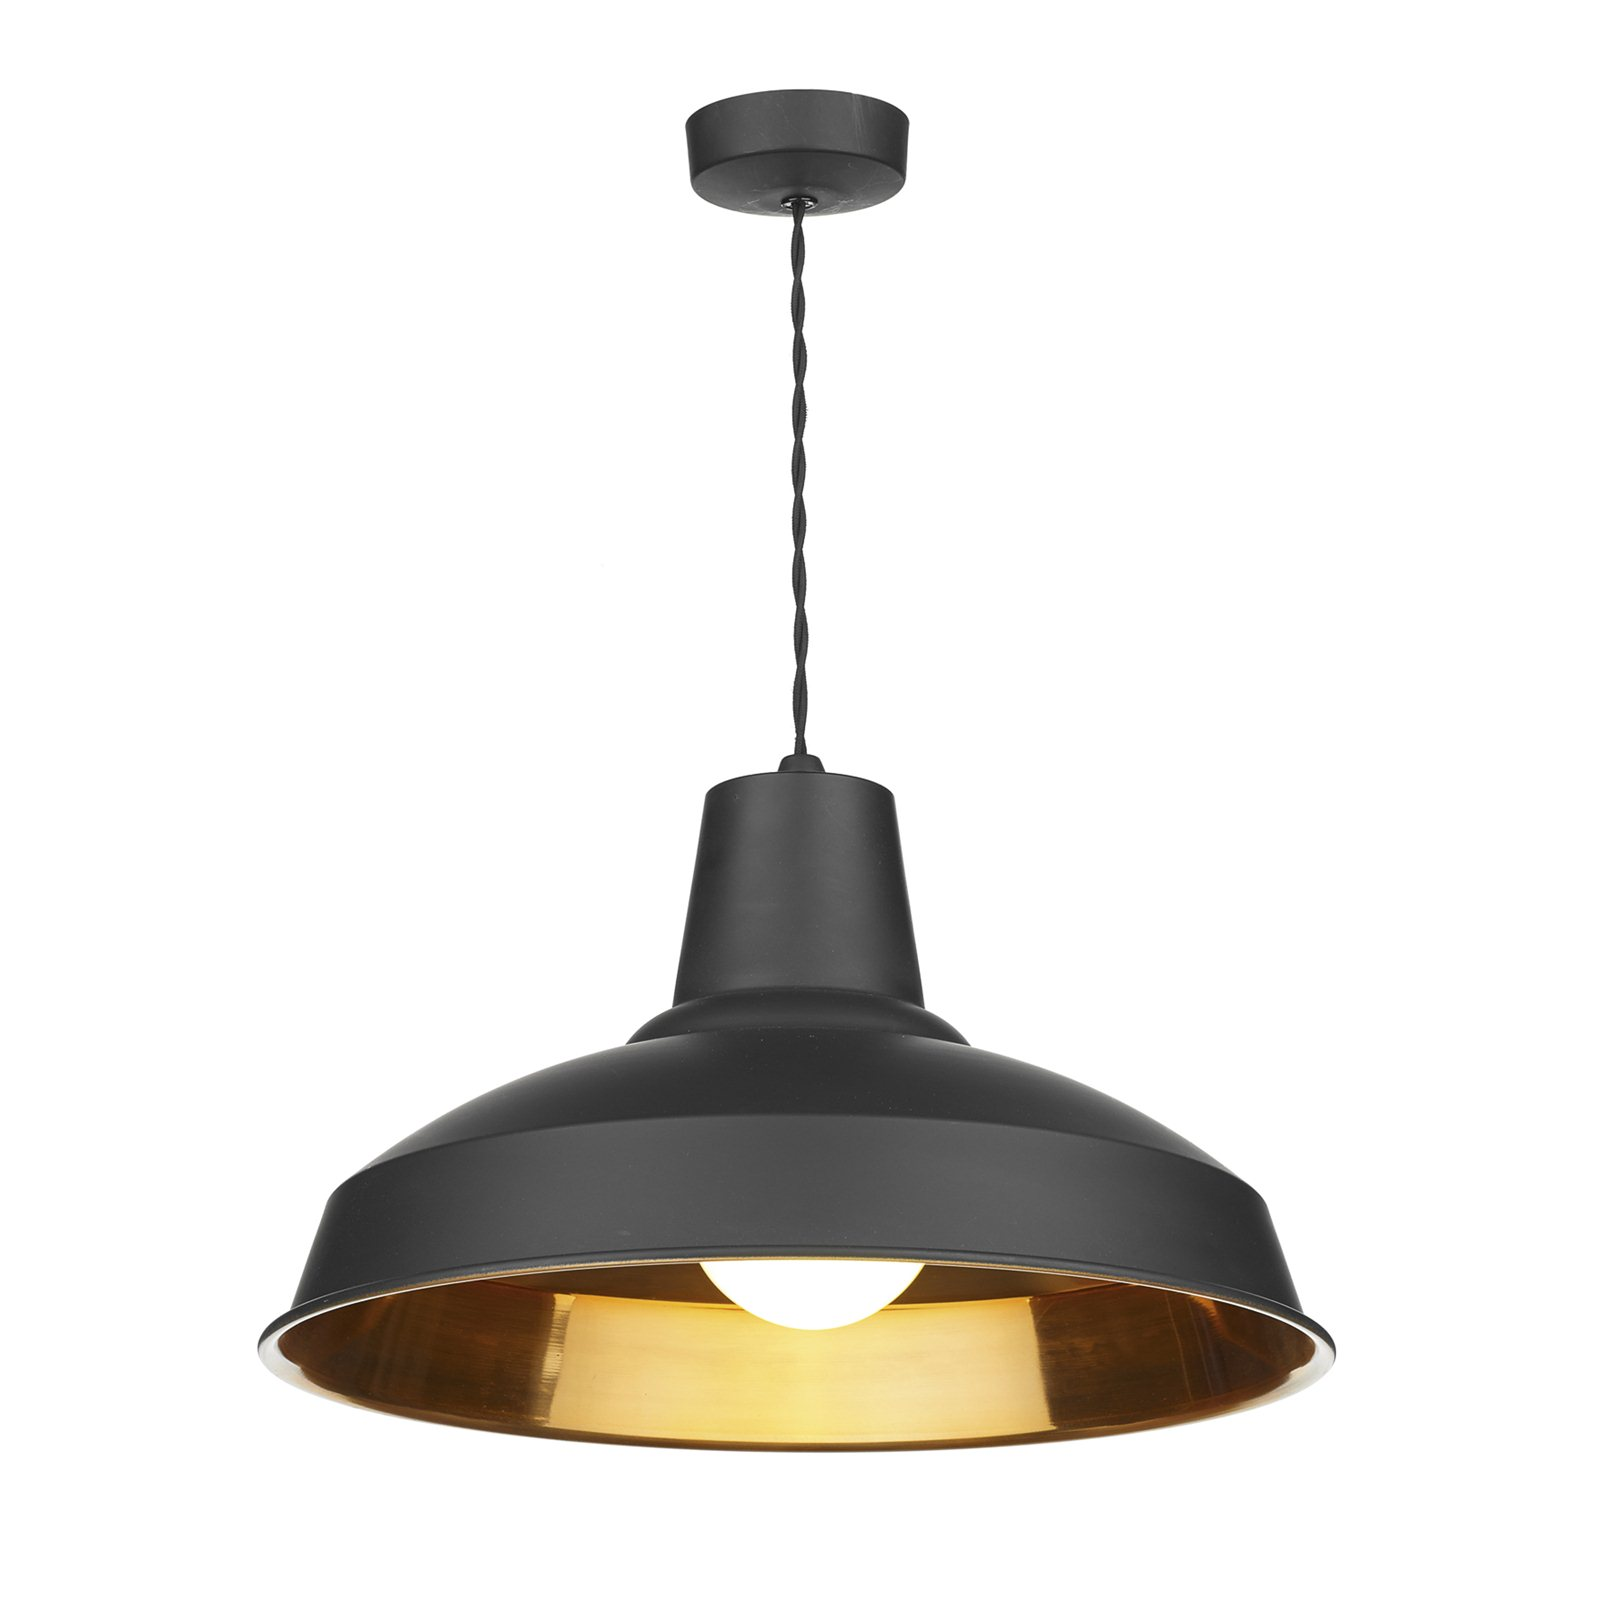 light pendant black uk tarbes vintage co lights in bulb